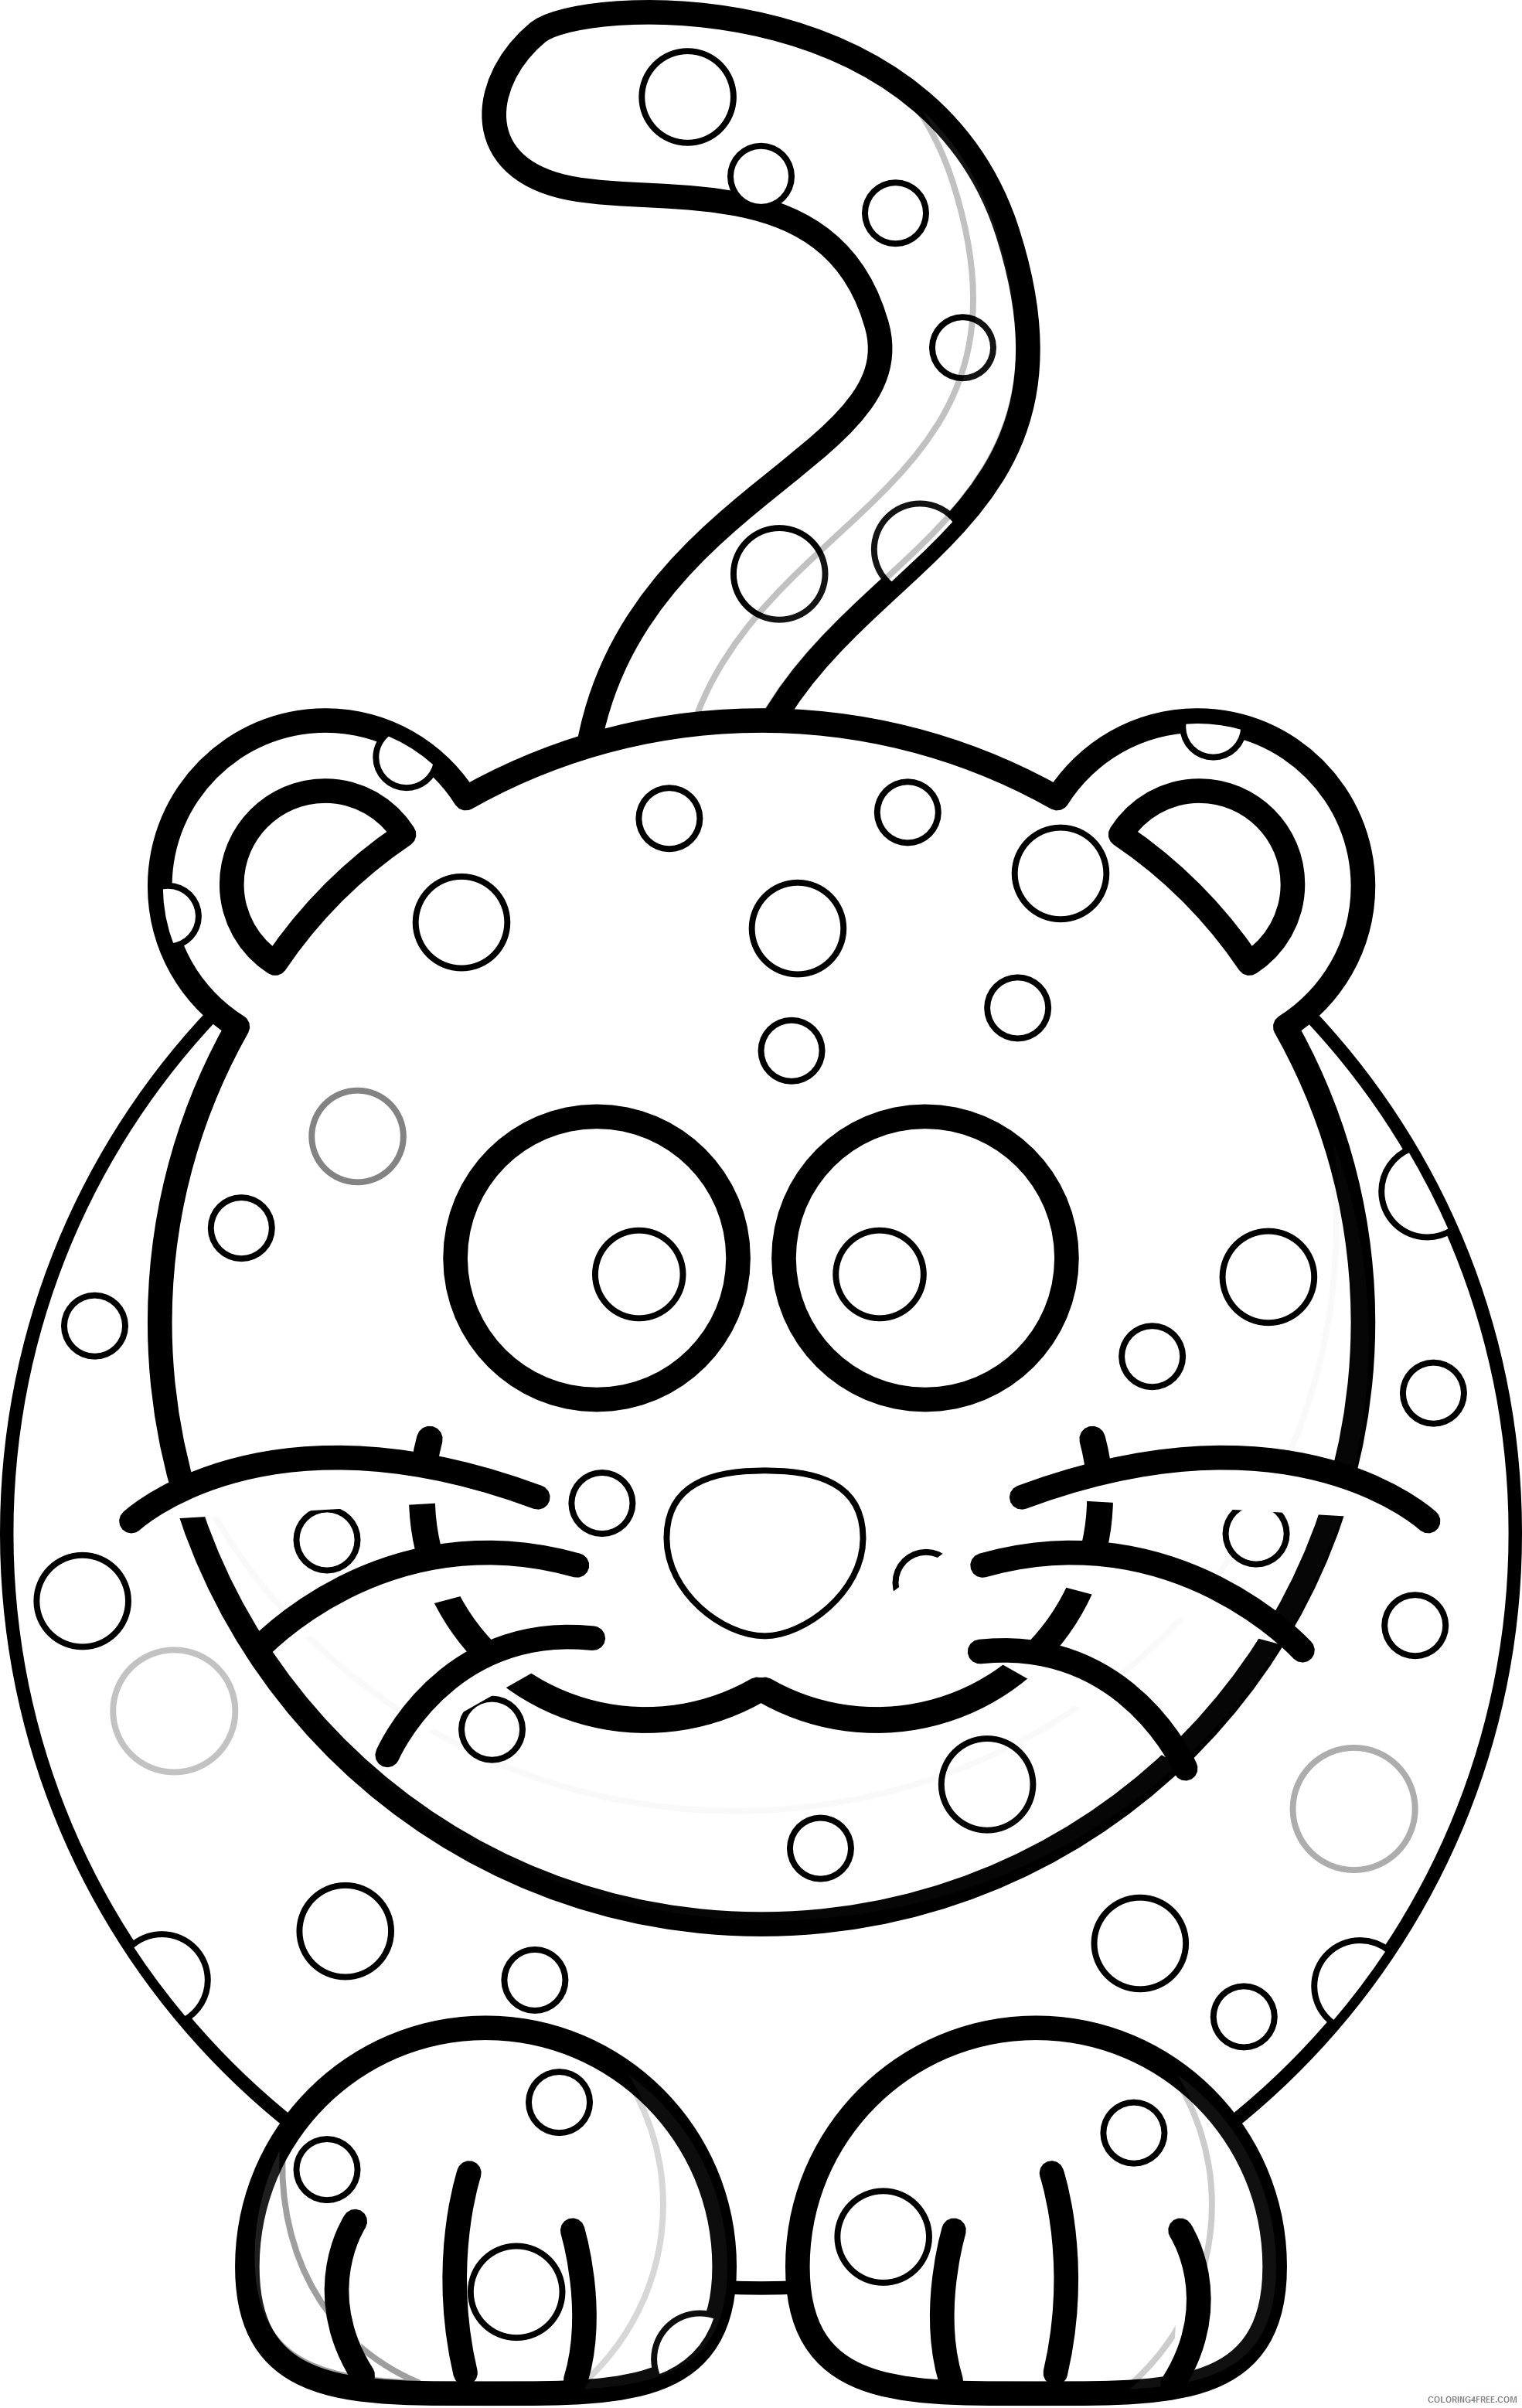 Quality Black and White Animals Coloring Pages stuffed animal best Printable Coloring4free